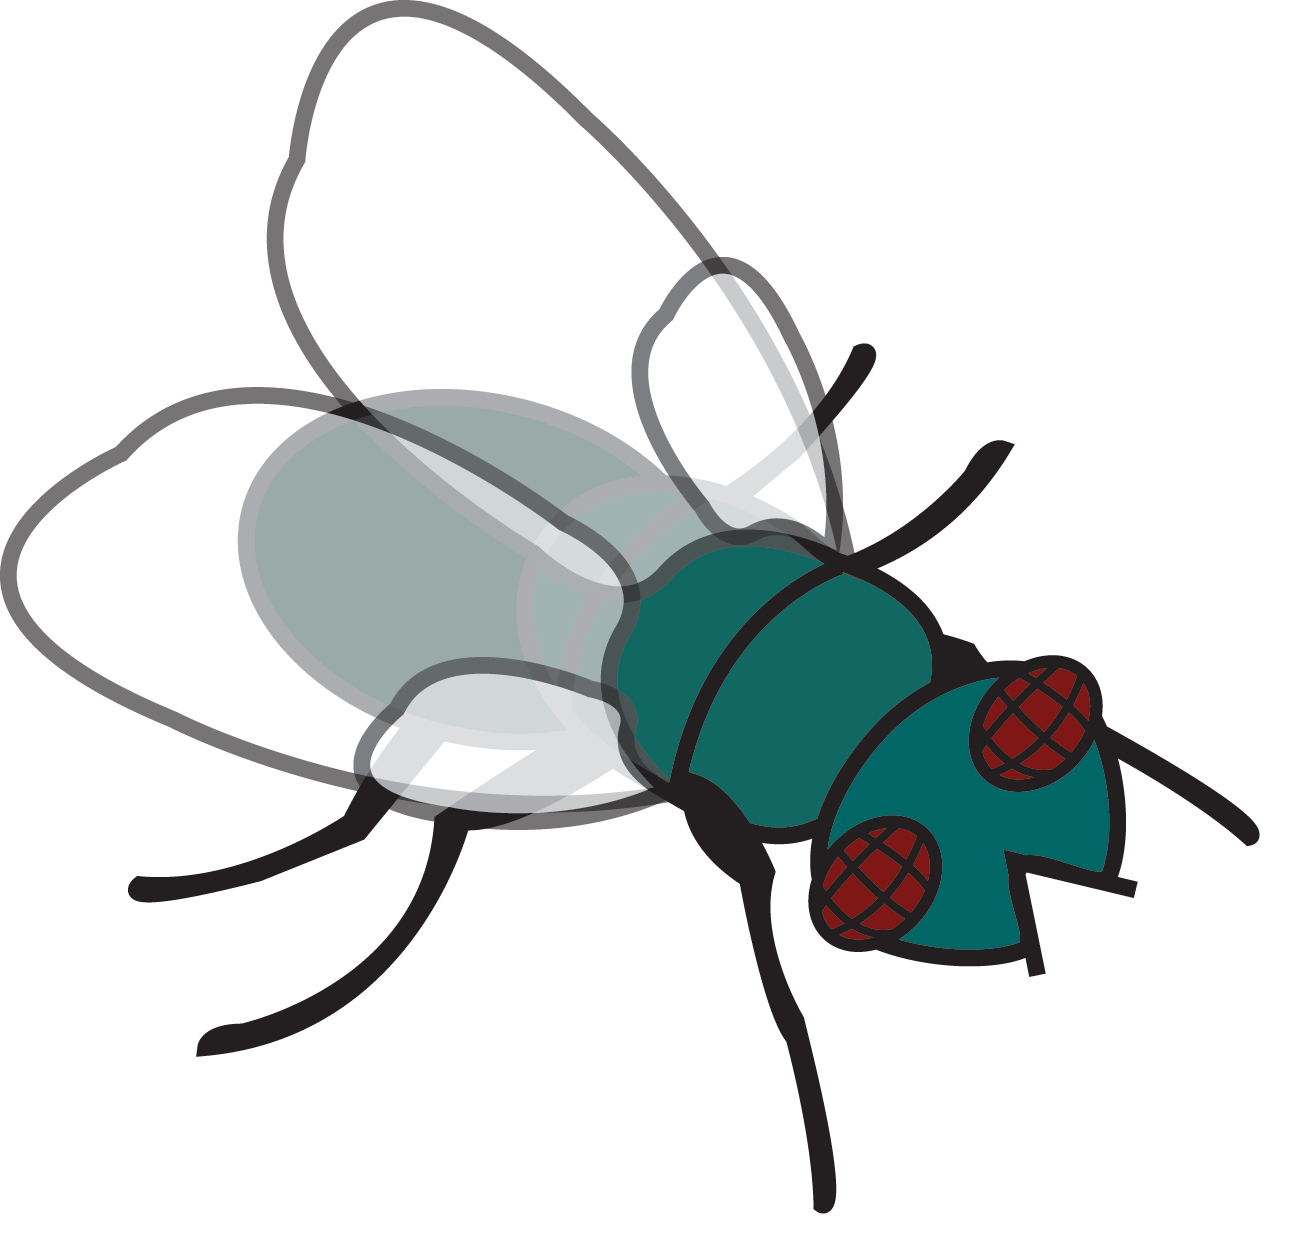 Fly images clip art - ClipartFest